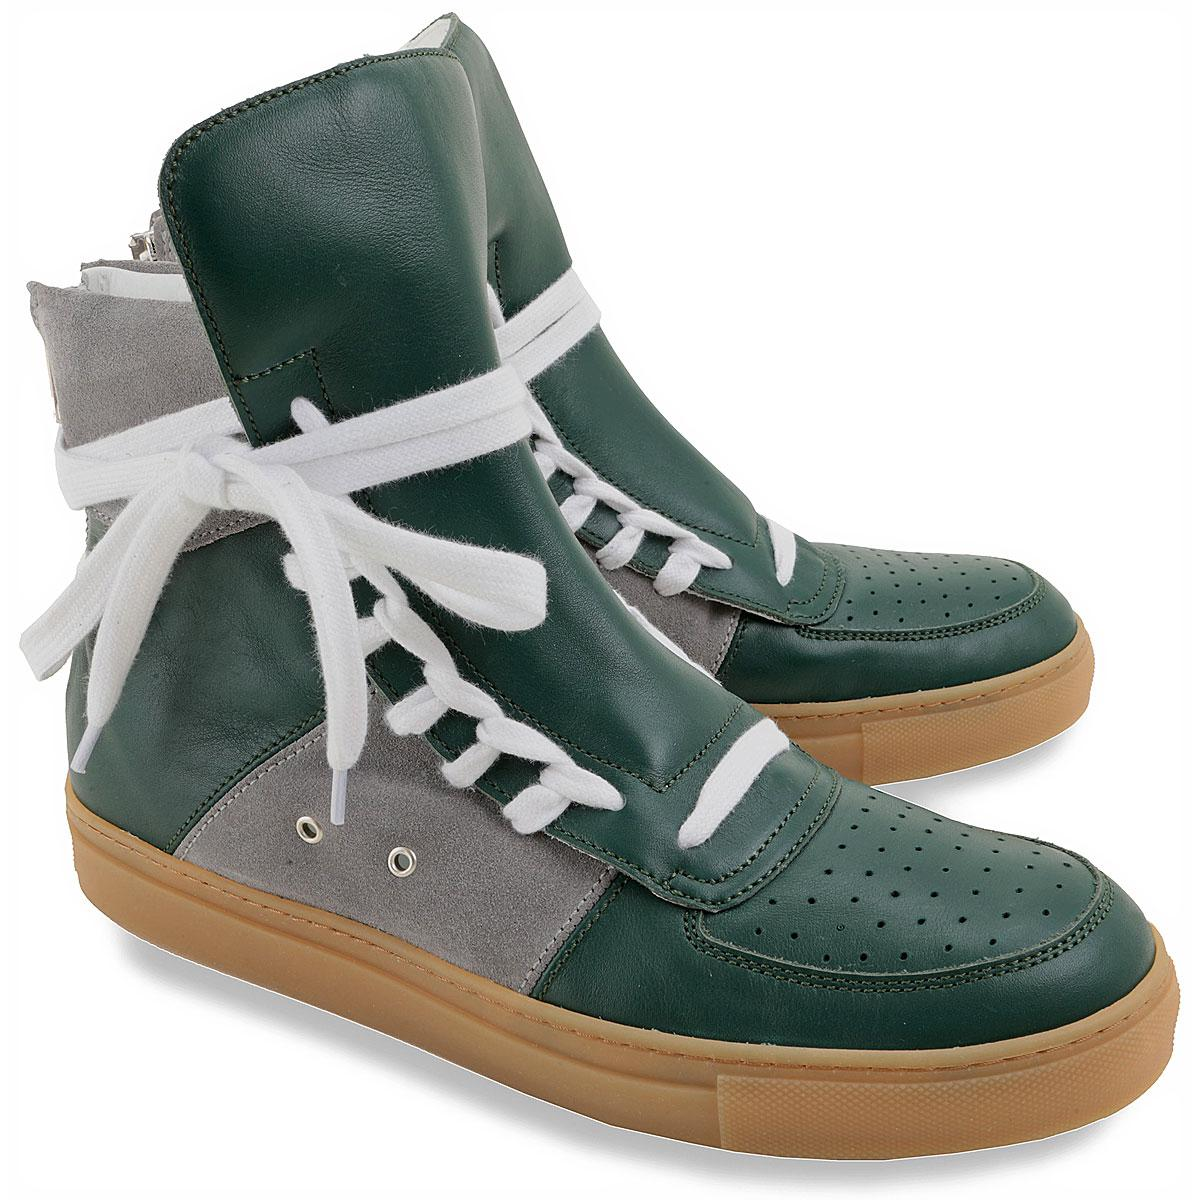 17b97967b298dd Lyst - Kris Van Assche Green Leather Overlong Laces High top ...